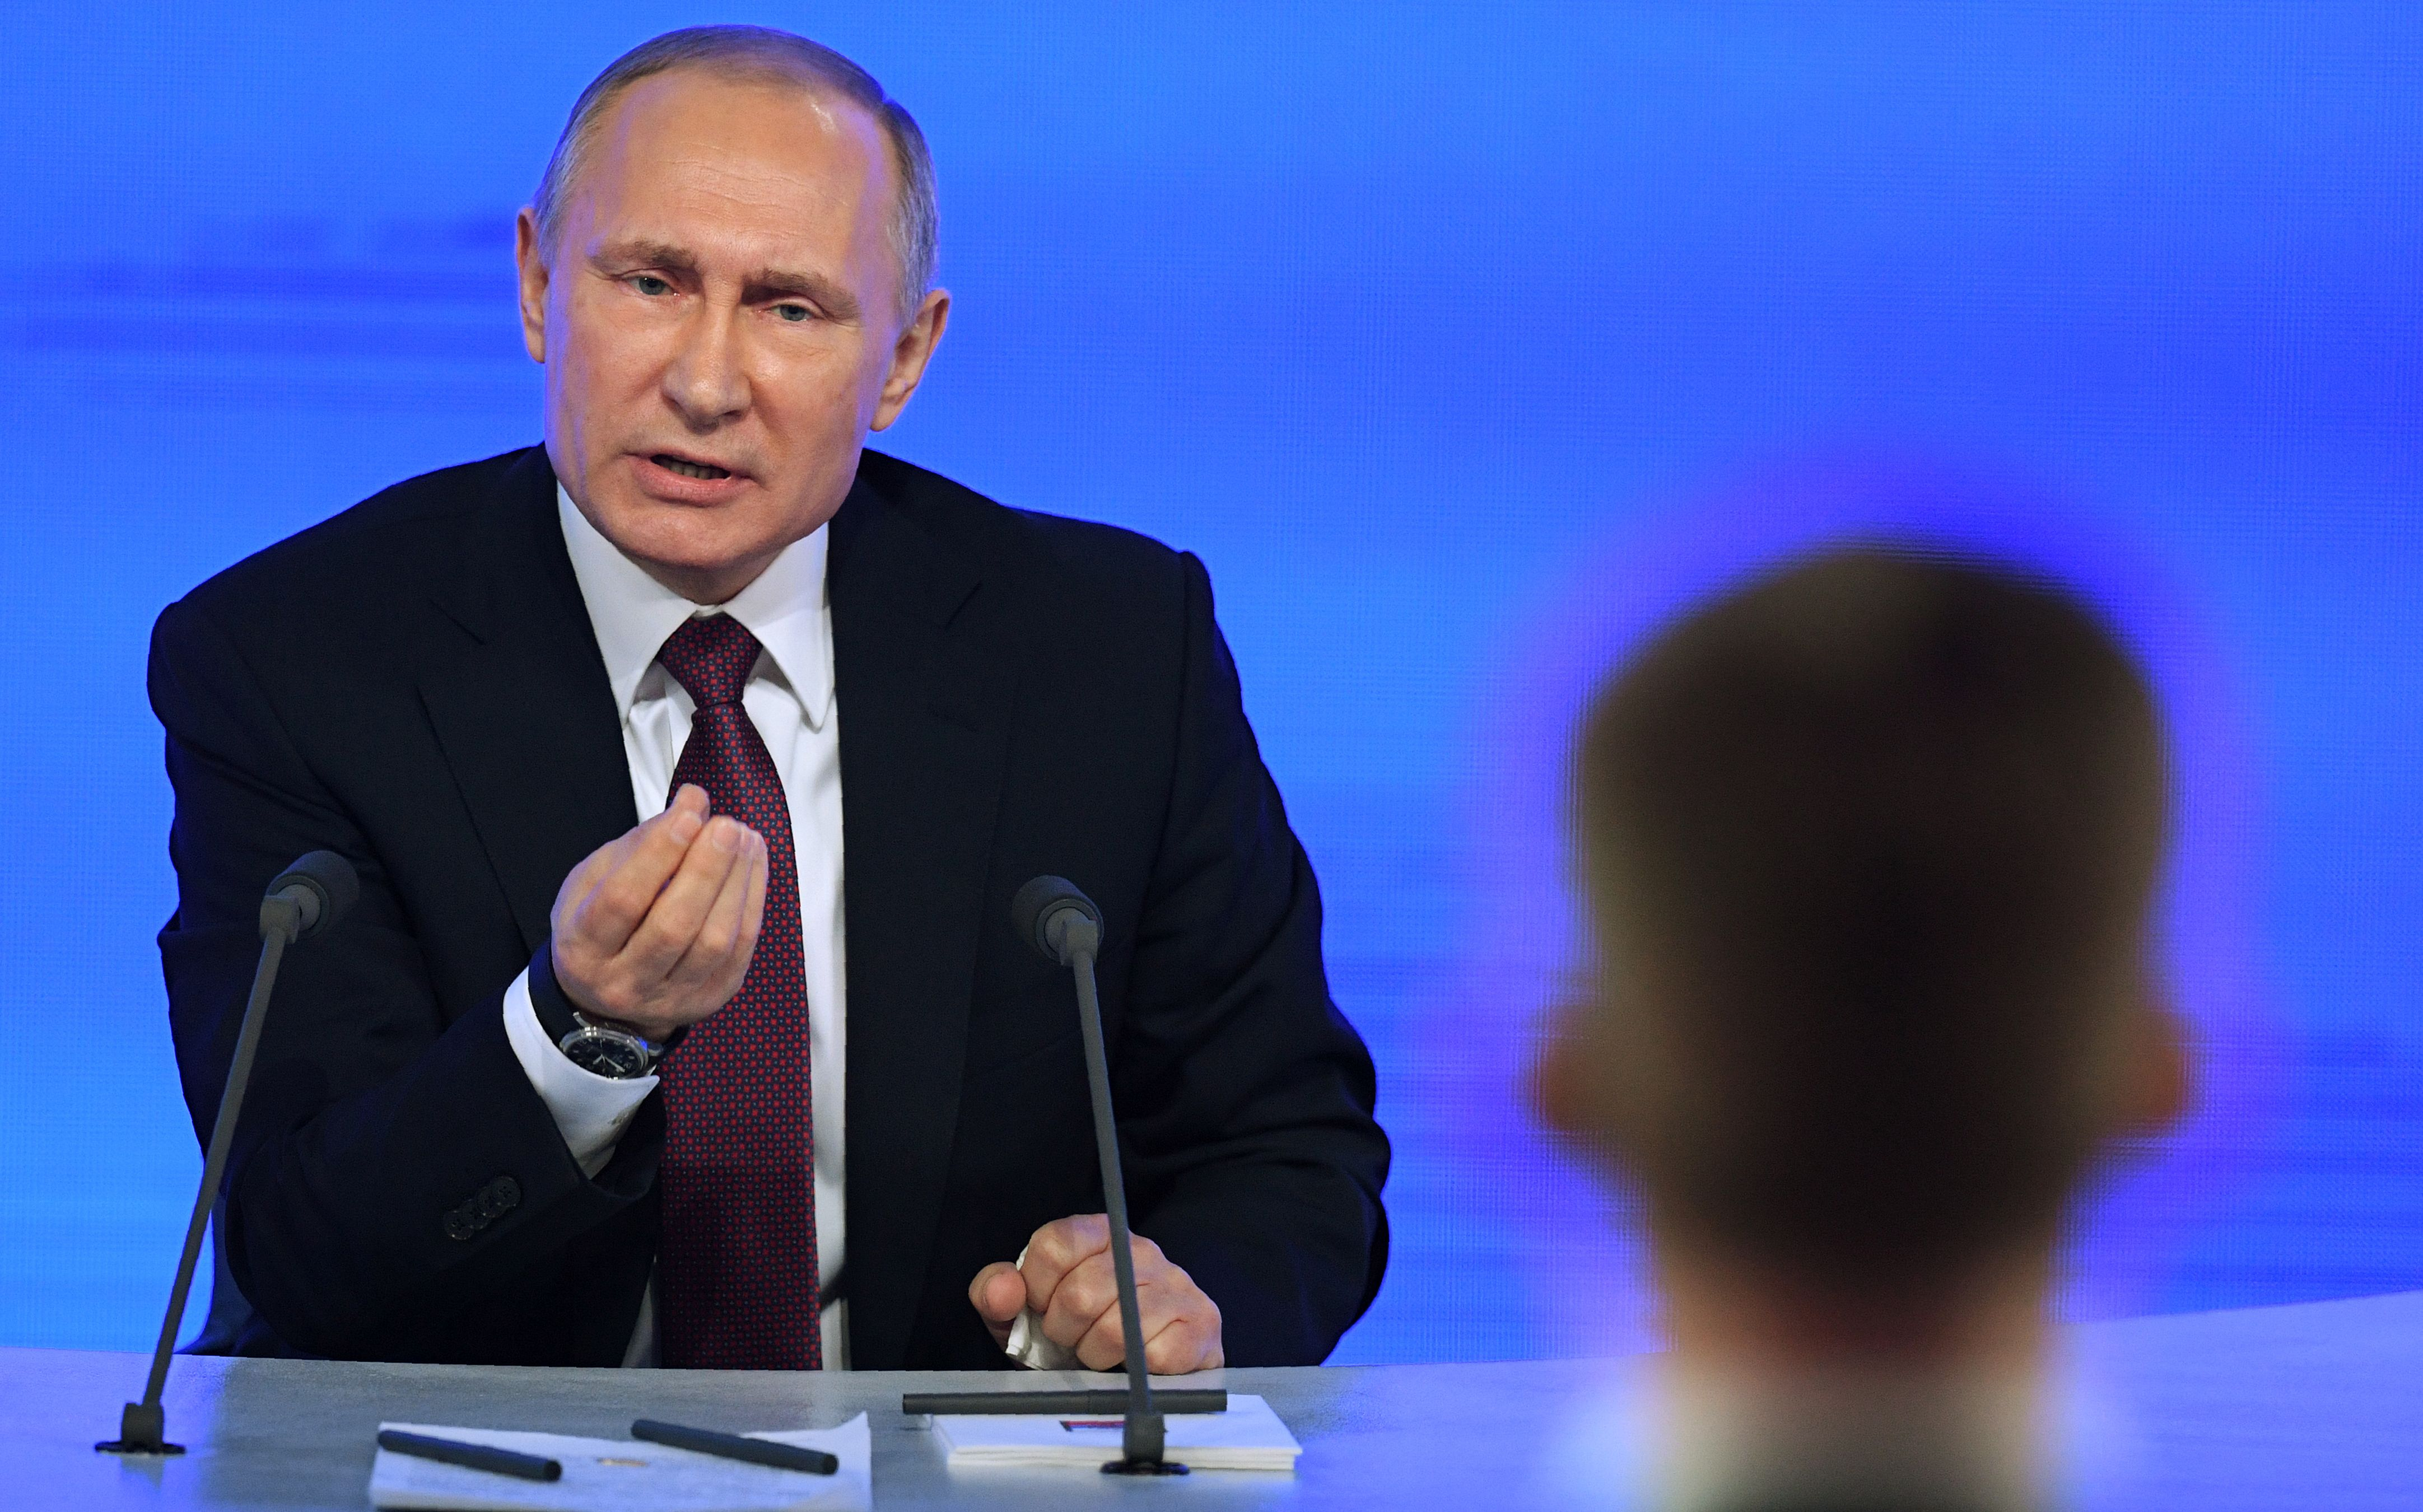 Putin says needs time to decide if he will run for 2018 presidency